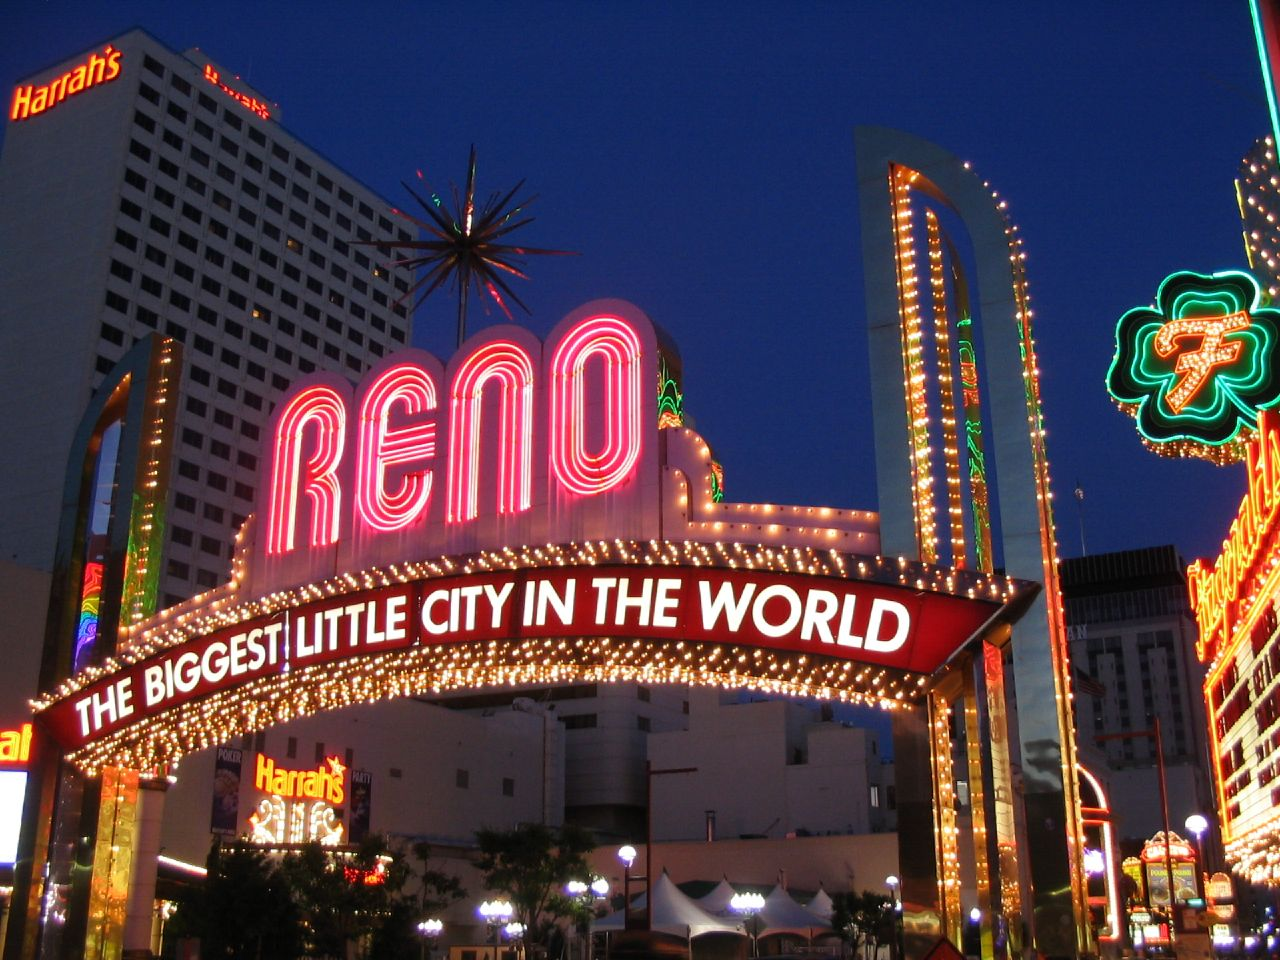 dating in reno nv Discover the 108 most romantic things to do in reno, nv - including date ideas and other romantic activities for couples, ranked by 23,083 user reviews.